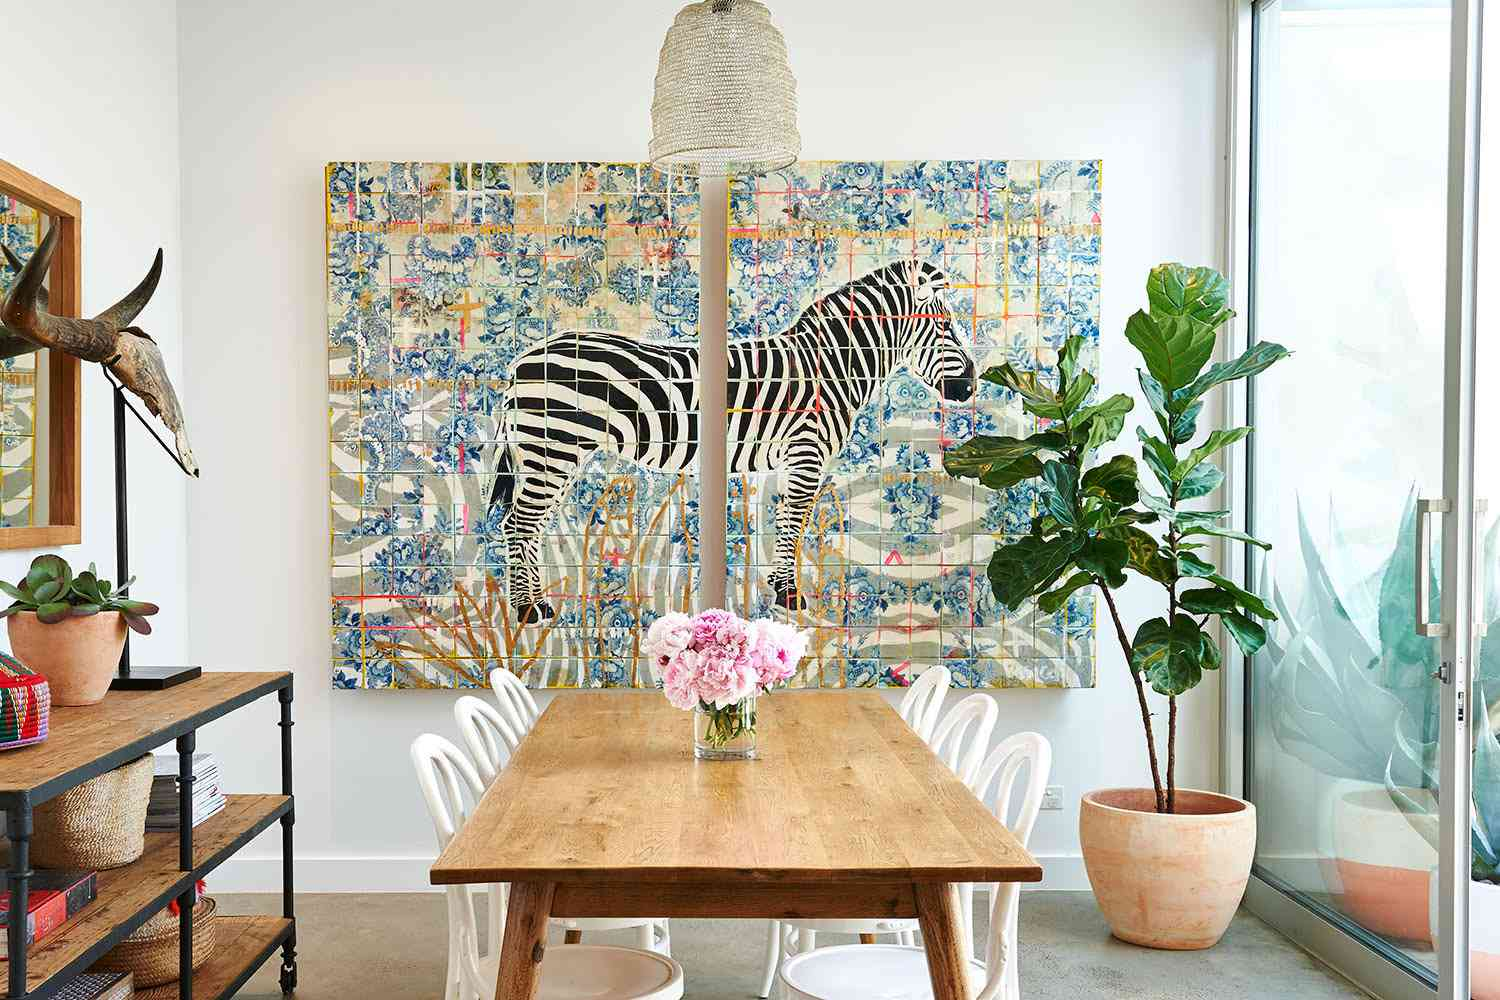 Beach-y dining room with painted zebra diptych wall decor